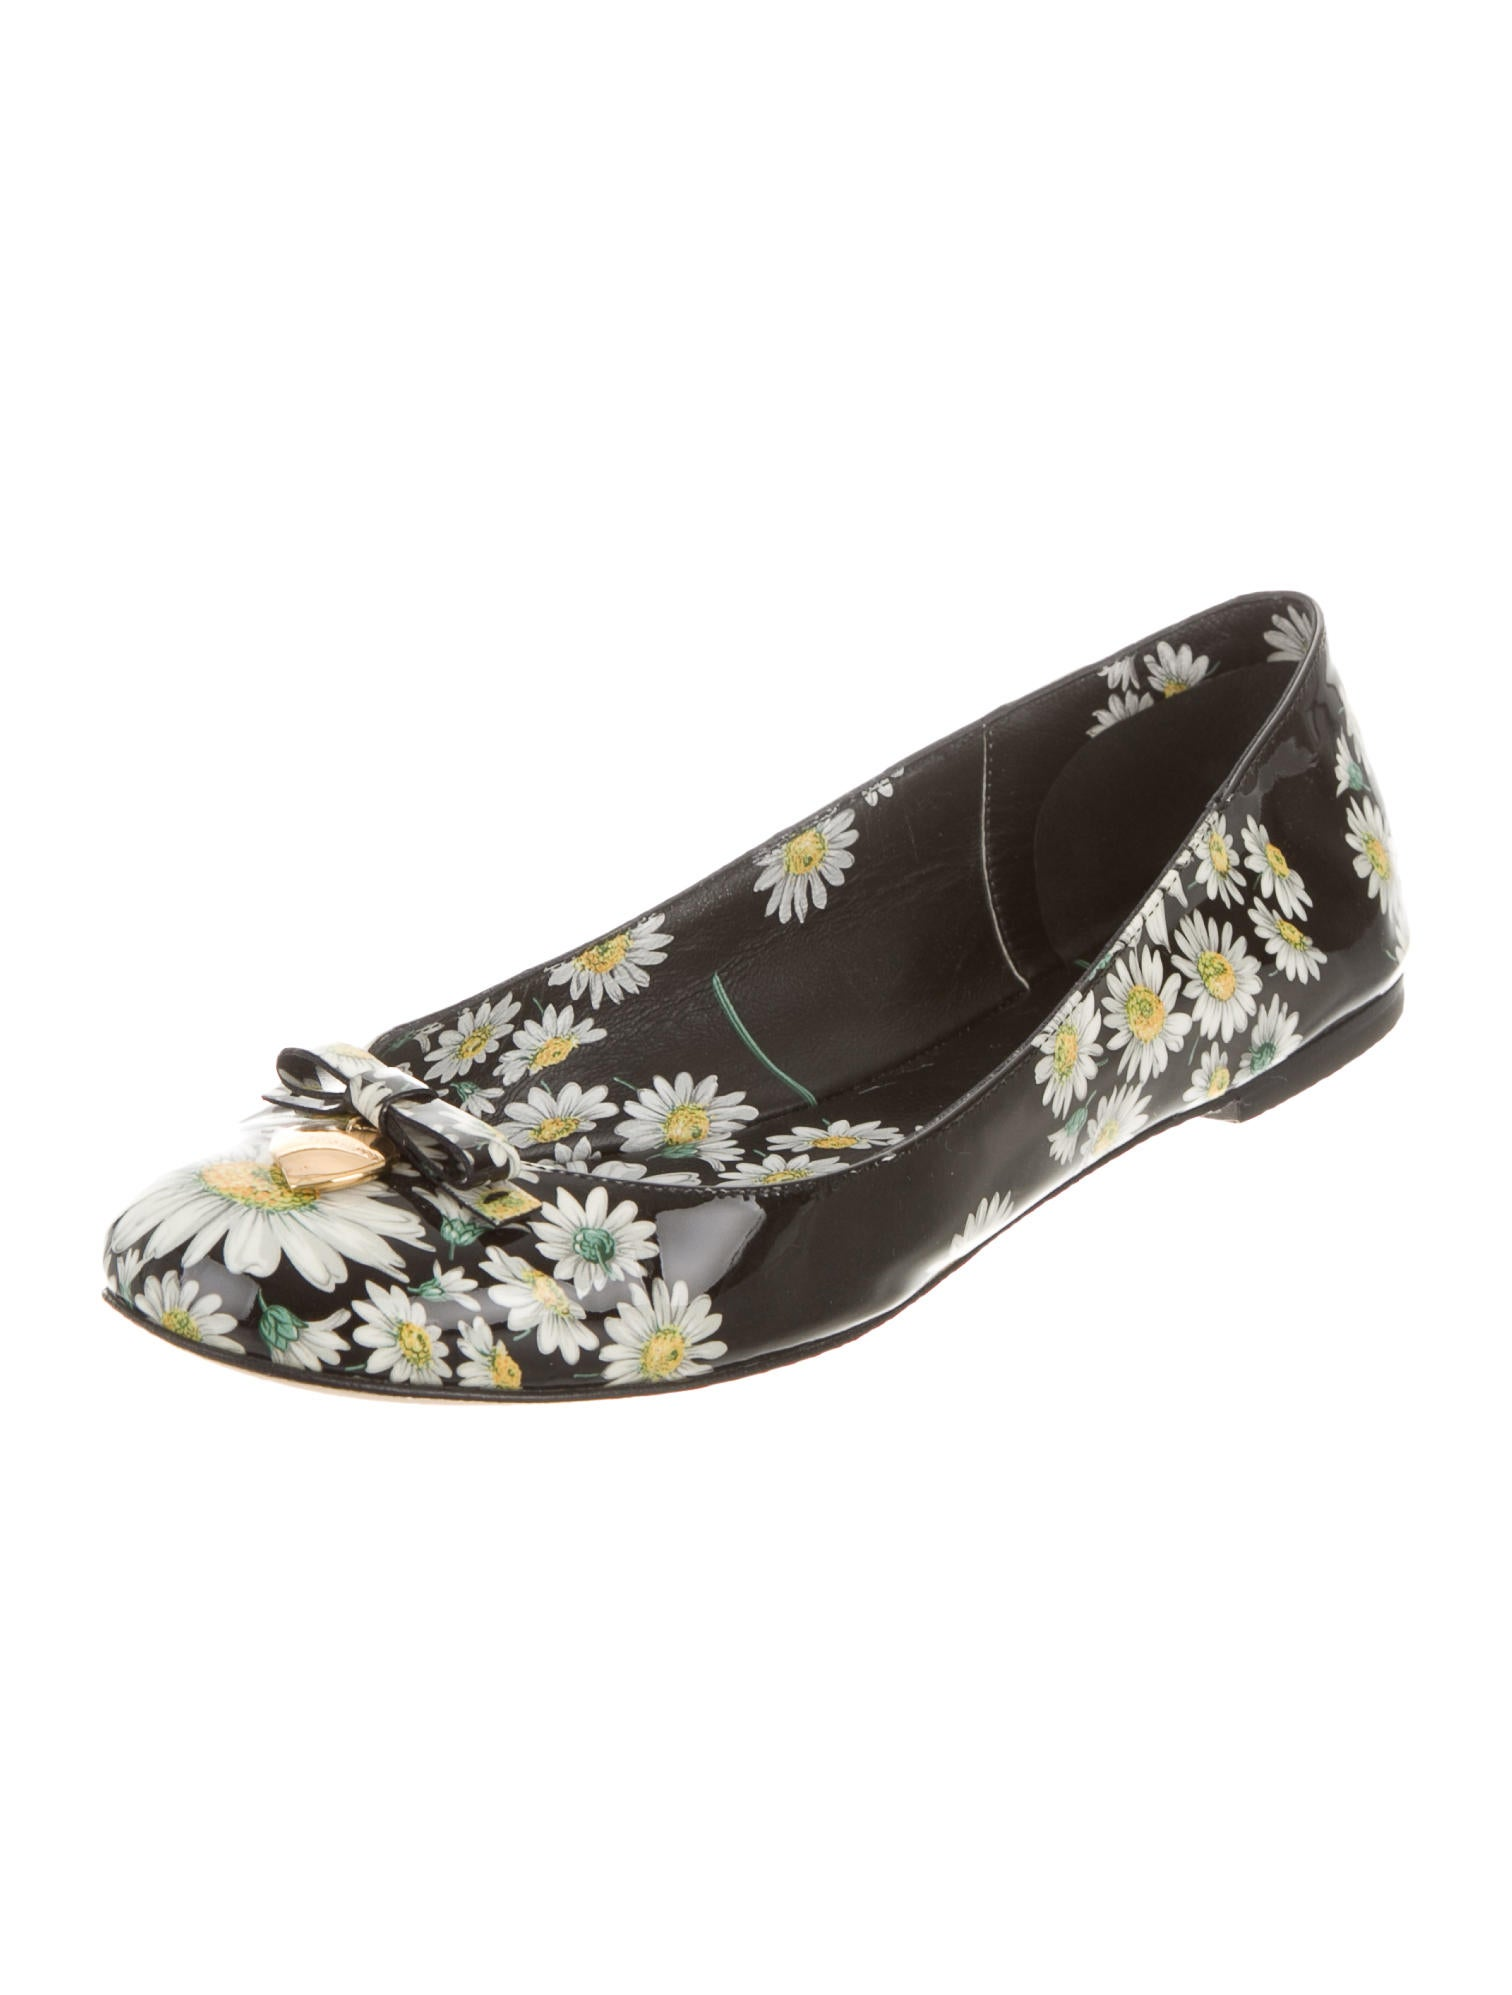 Dolce amp Gabbana Floral Printed Round Toe Flats Shoes  : DAG590042enlarged from www.therealreal.com size 1512 x 1995 jpeg 114kB